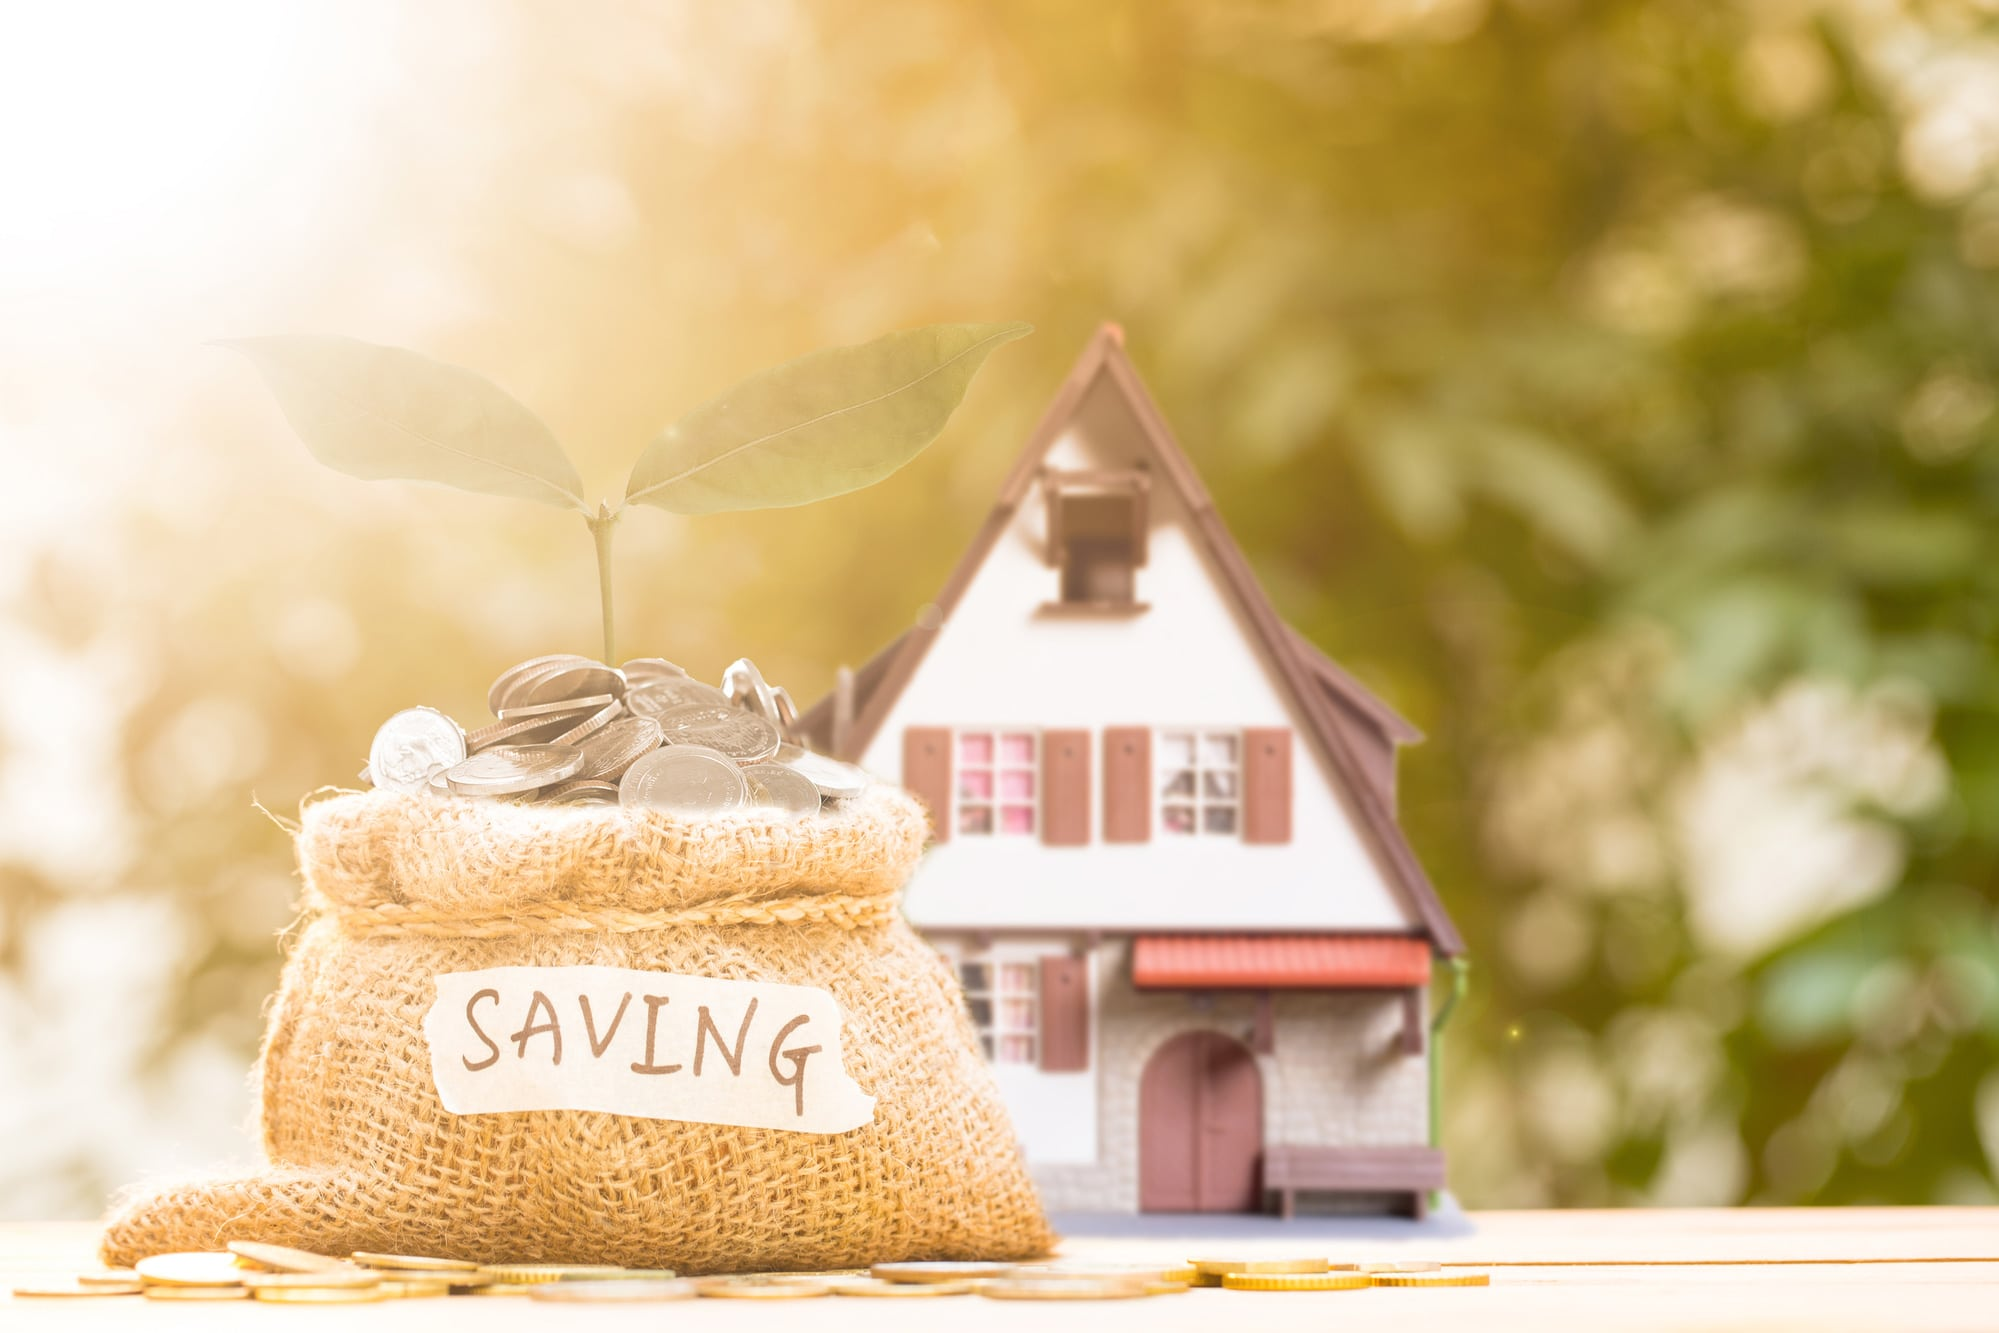 5 Costs to Watch Out For When Refinancing